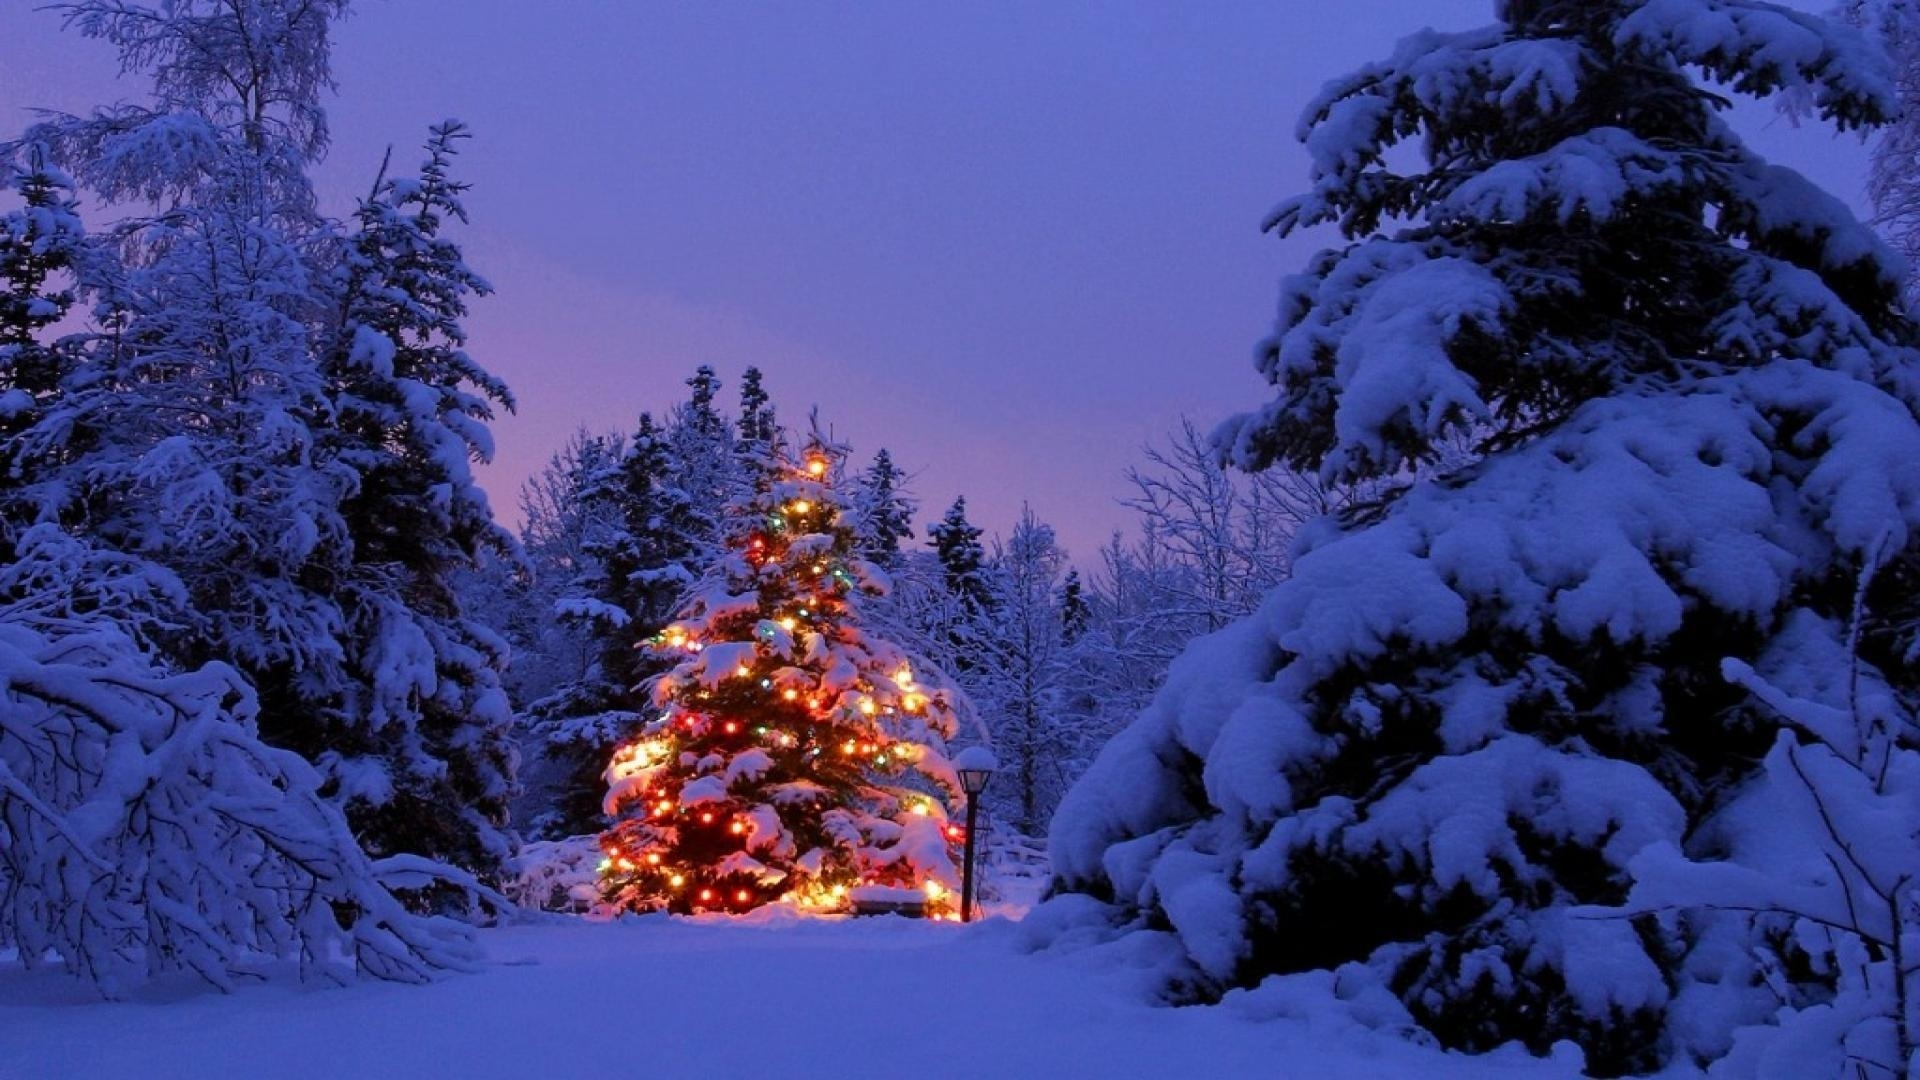 christmas scene backgrounds - wallpaper cave